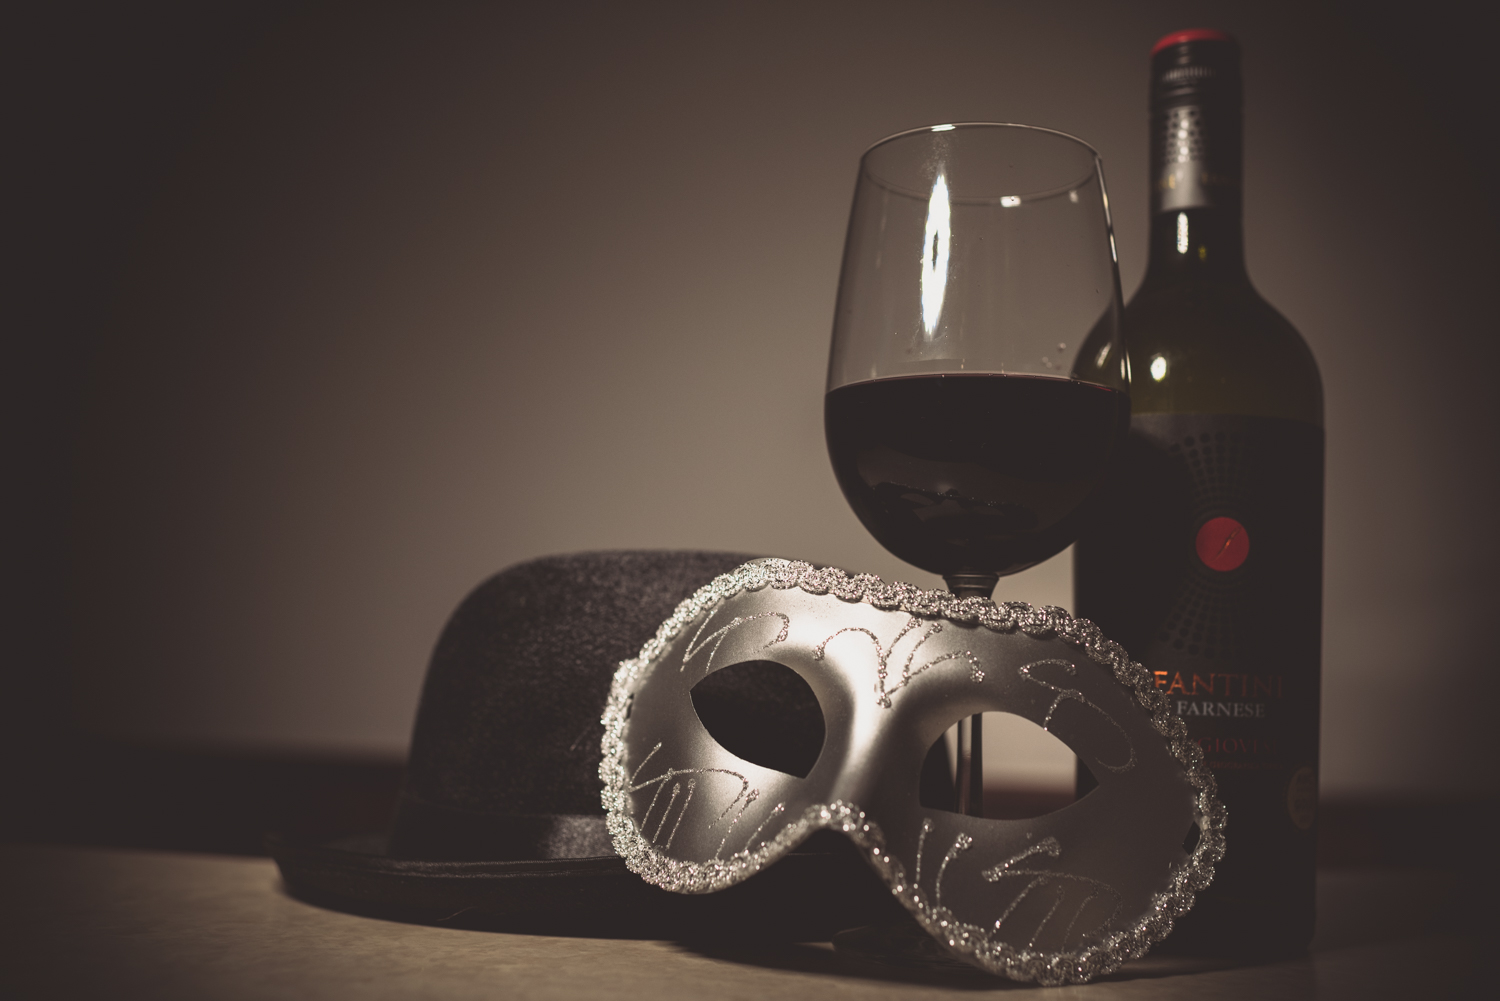 A mask, hat and some wine from a new years wedding celebration